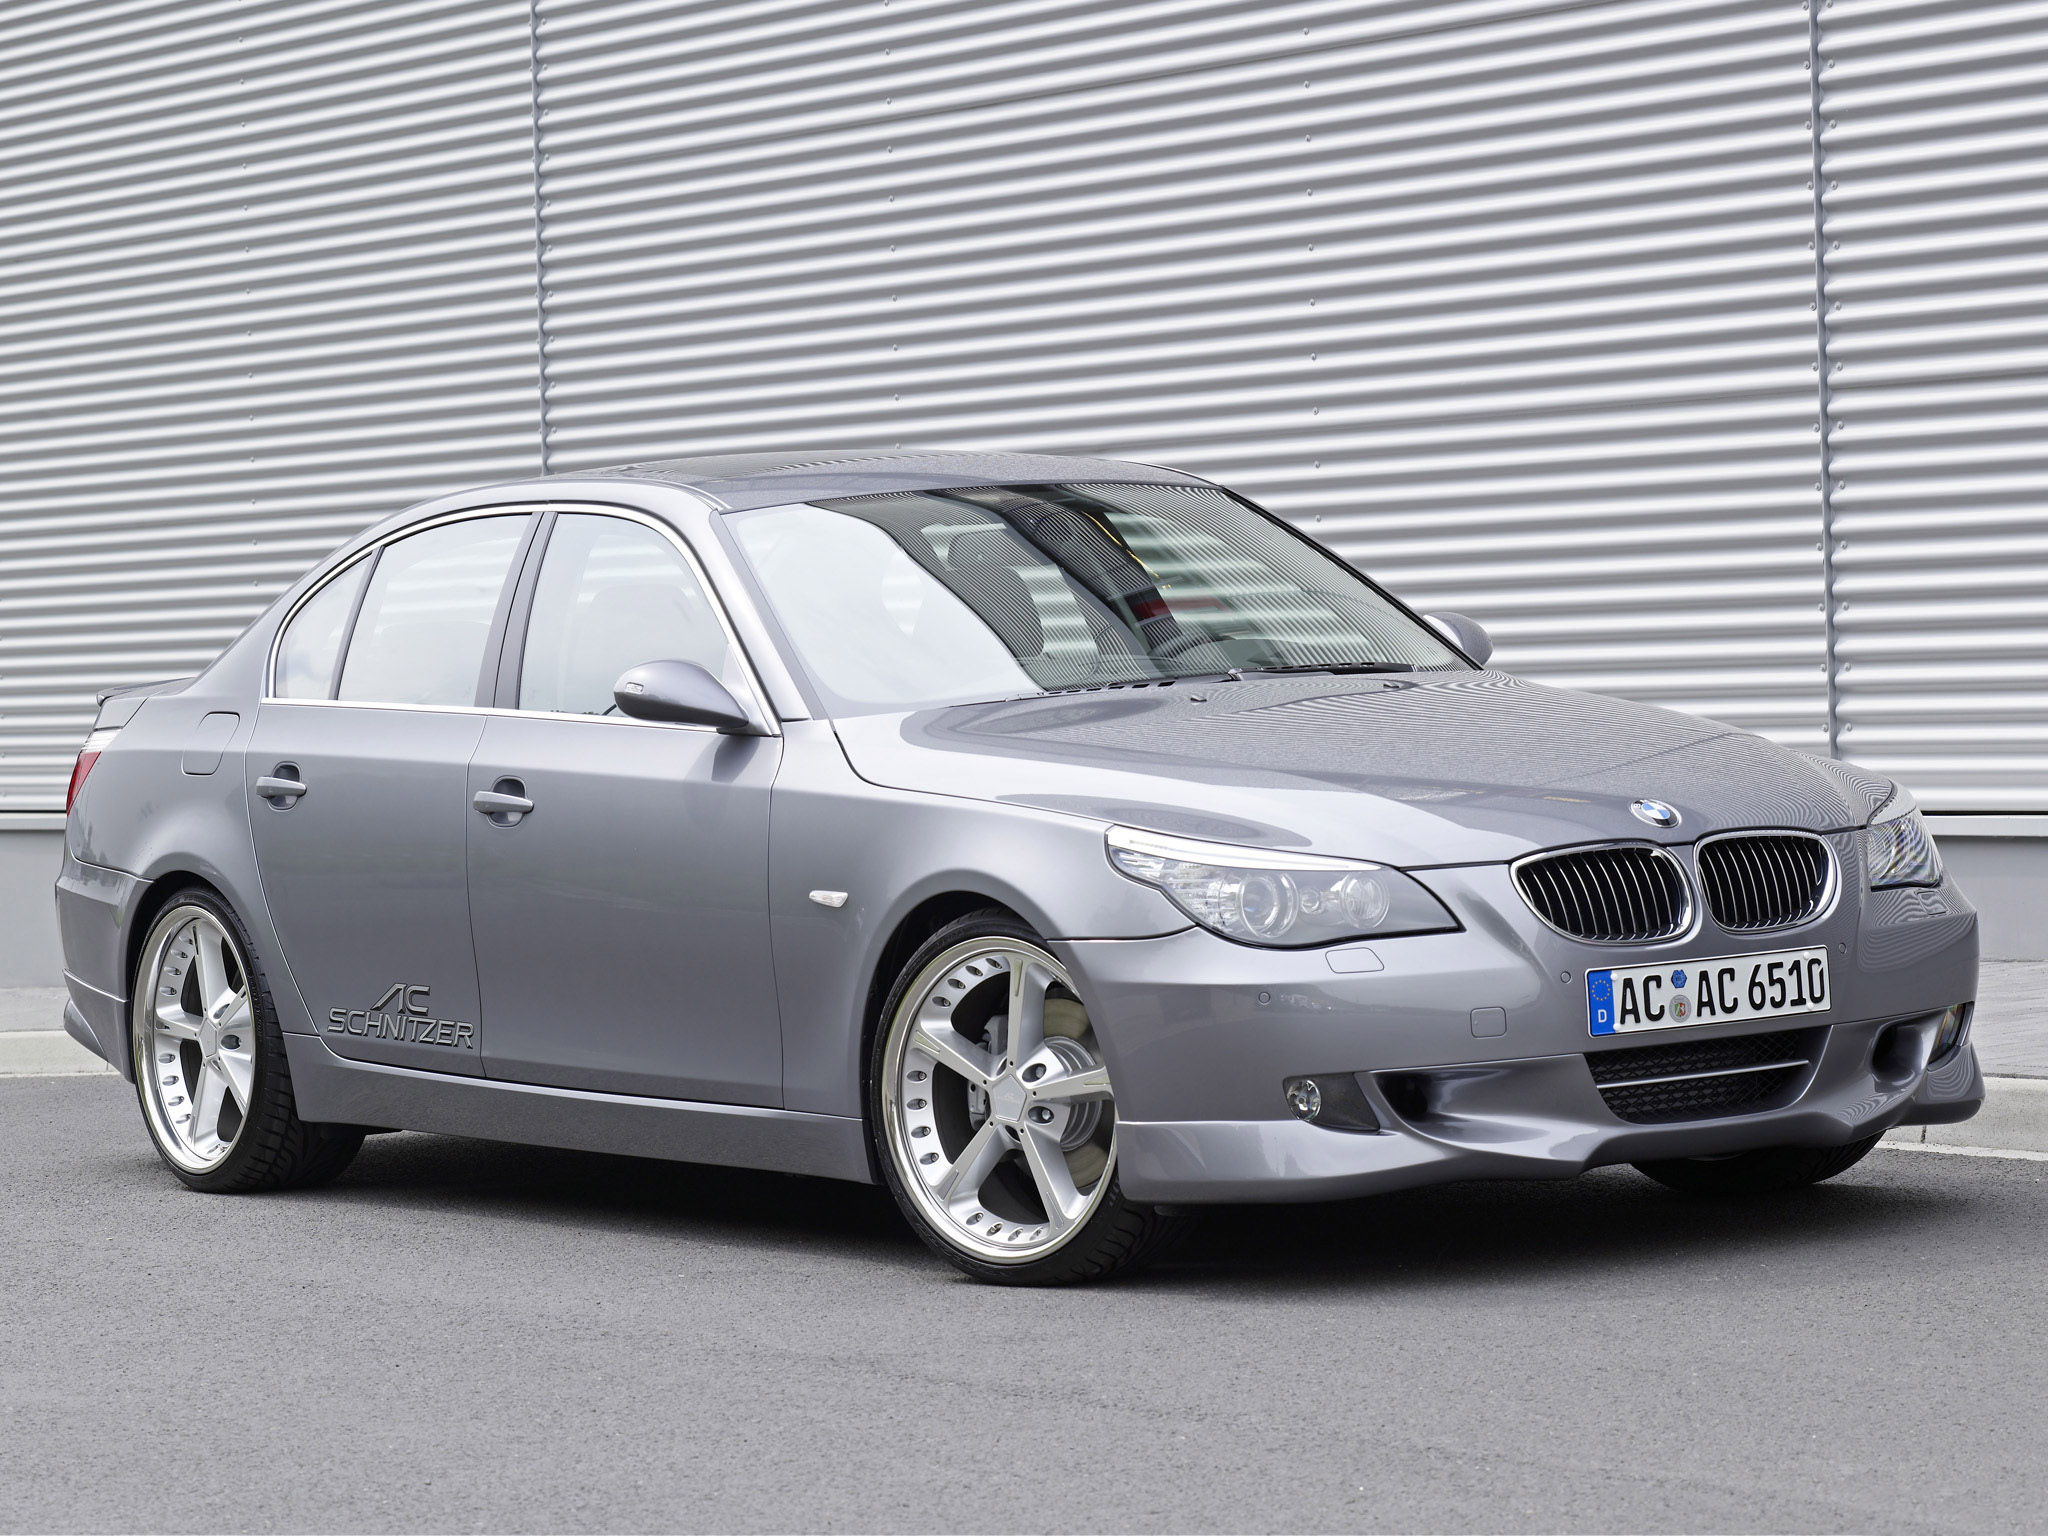 ac schnitzer bmw 5 series acs5 e60 2008 ac schnitzer bmw 5 series acs5 e60 2008 photo 10 car. Black Bedroom Furniture Sets. Home Design Ideas